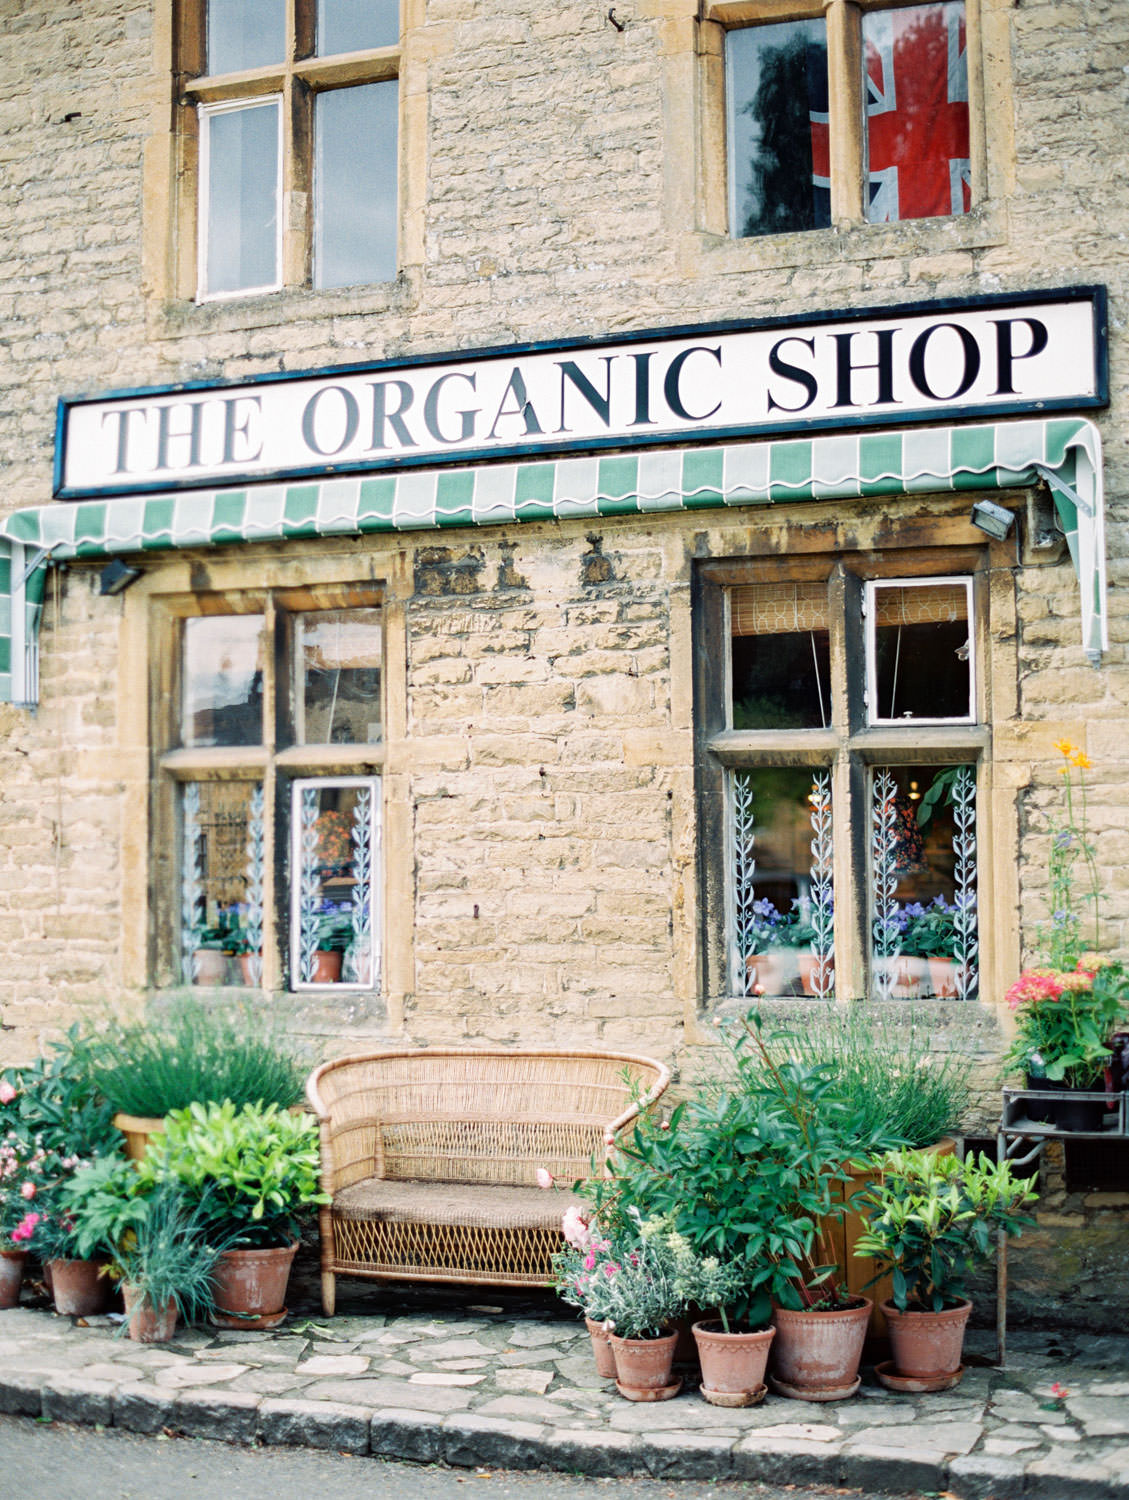 Stow-on-the-Wold The Organic Shop in the Cotswolds. Flutter Magazine Retreat in the Cotswolds, England. Photo by Cavin Elizabeth Photography on film